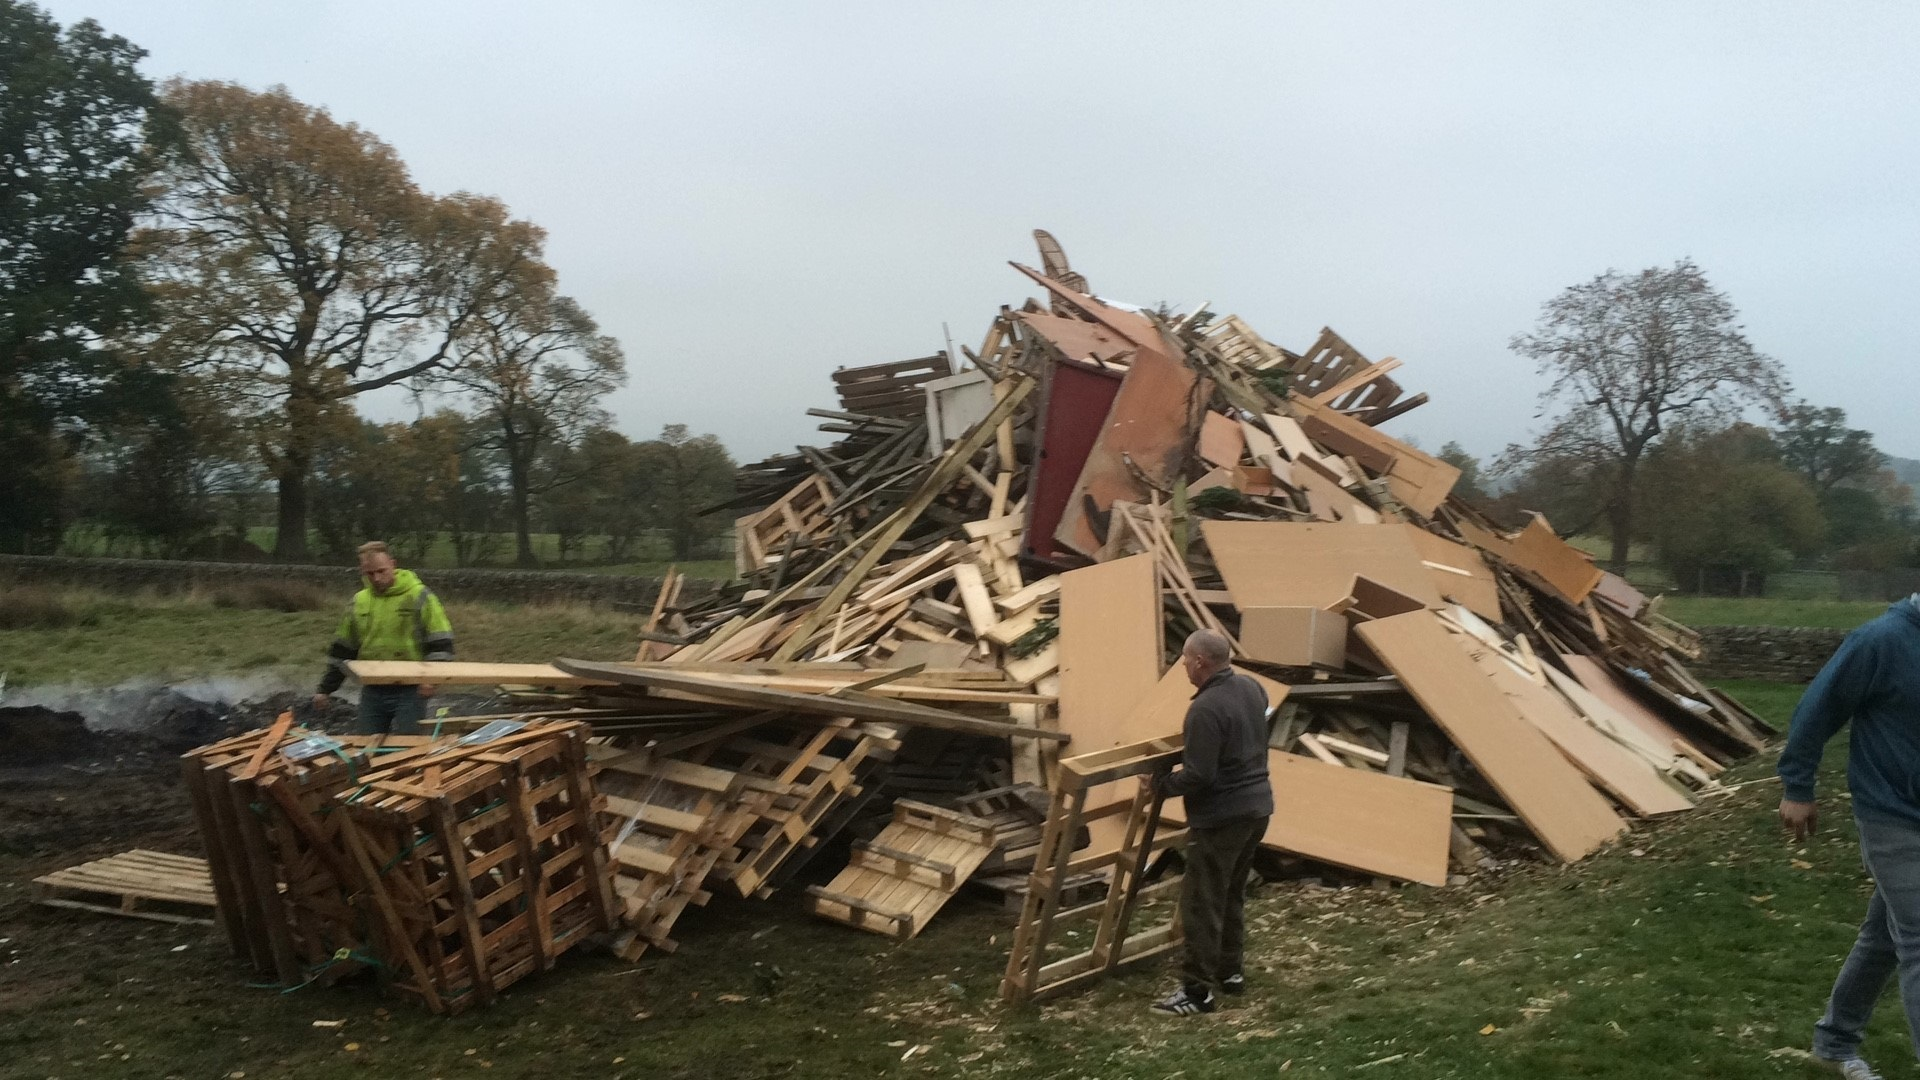 Workmen and residents helping to build a new bonfire for The Roebuck pub, near Otley, after vandals struck